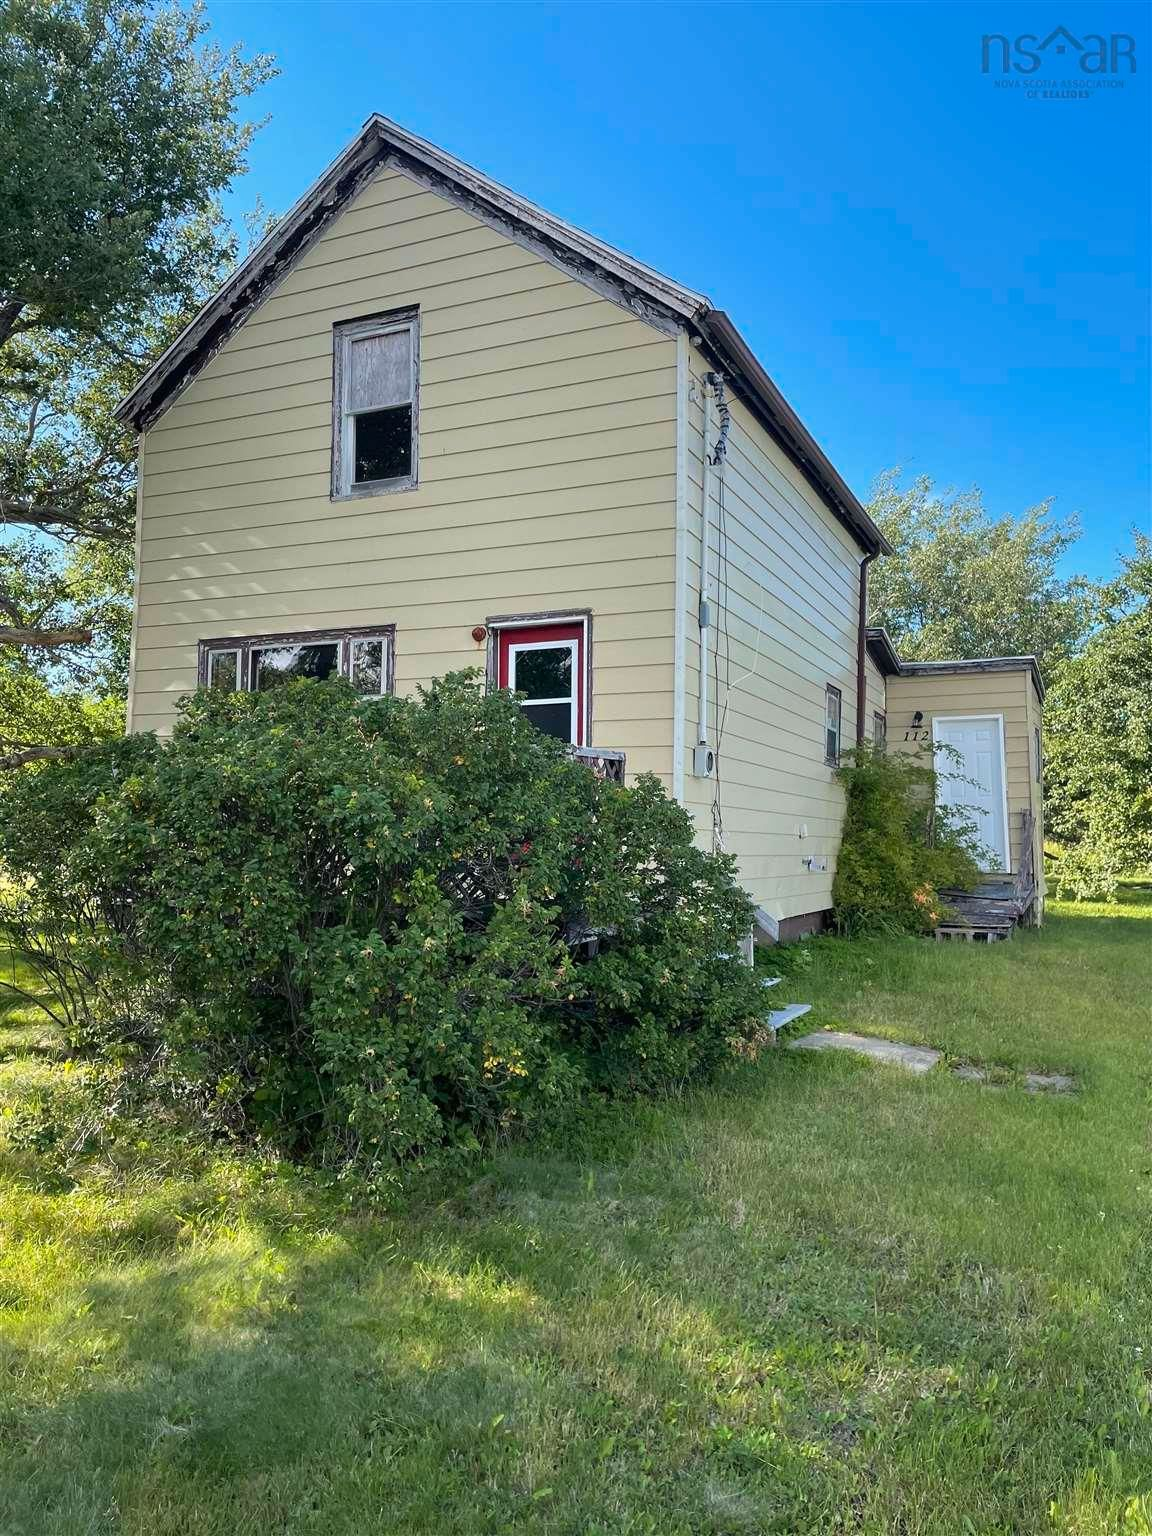 Photo 5: Photos: 112 holland Street in Reserve Mines: 203-Glace Bay Residential for sale (Cape Breton)  : MLS®# 202120364